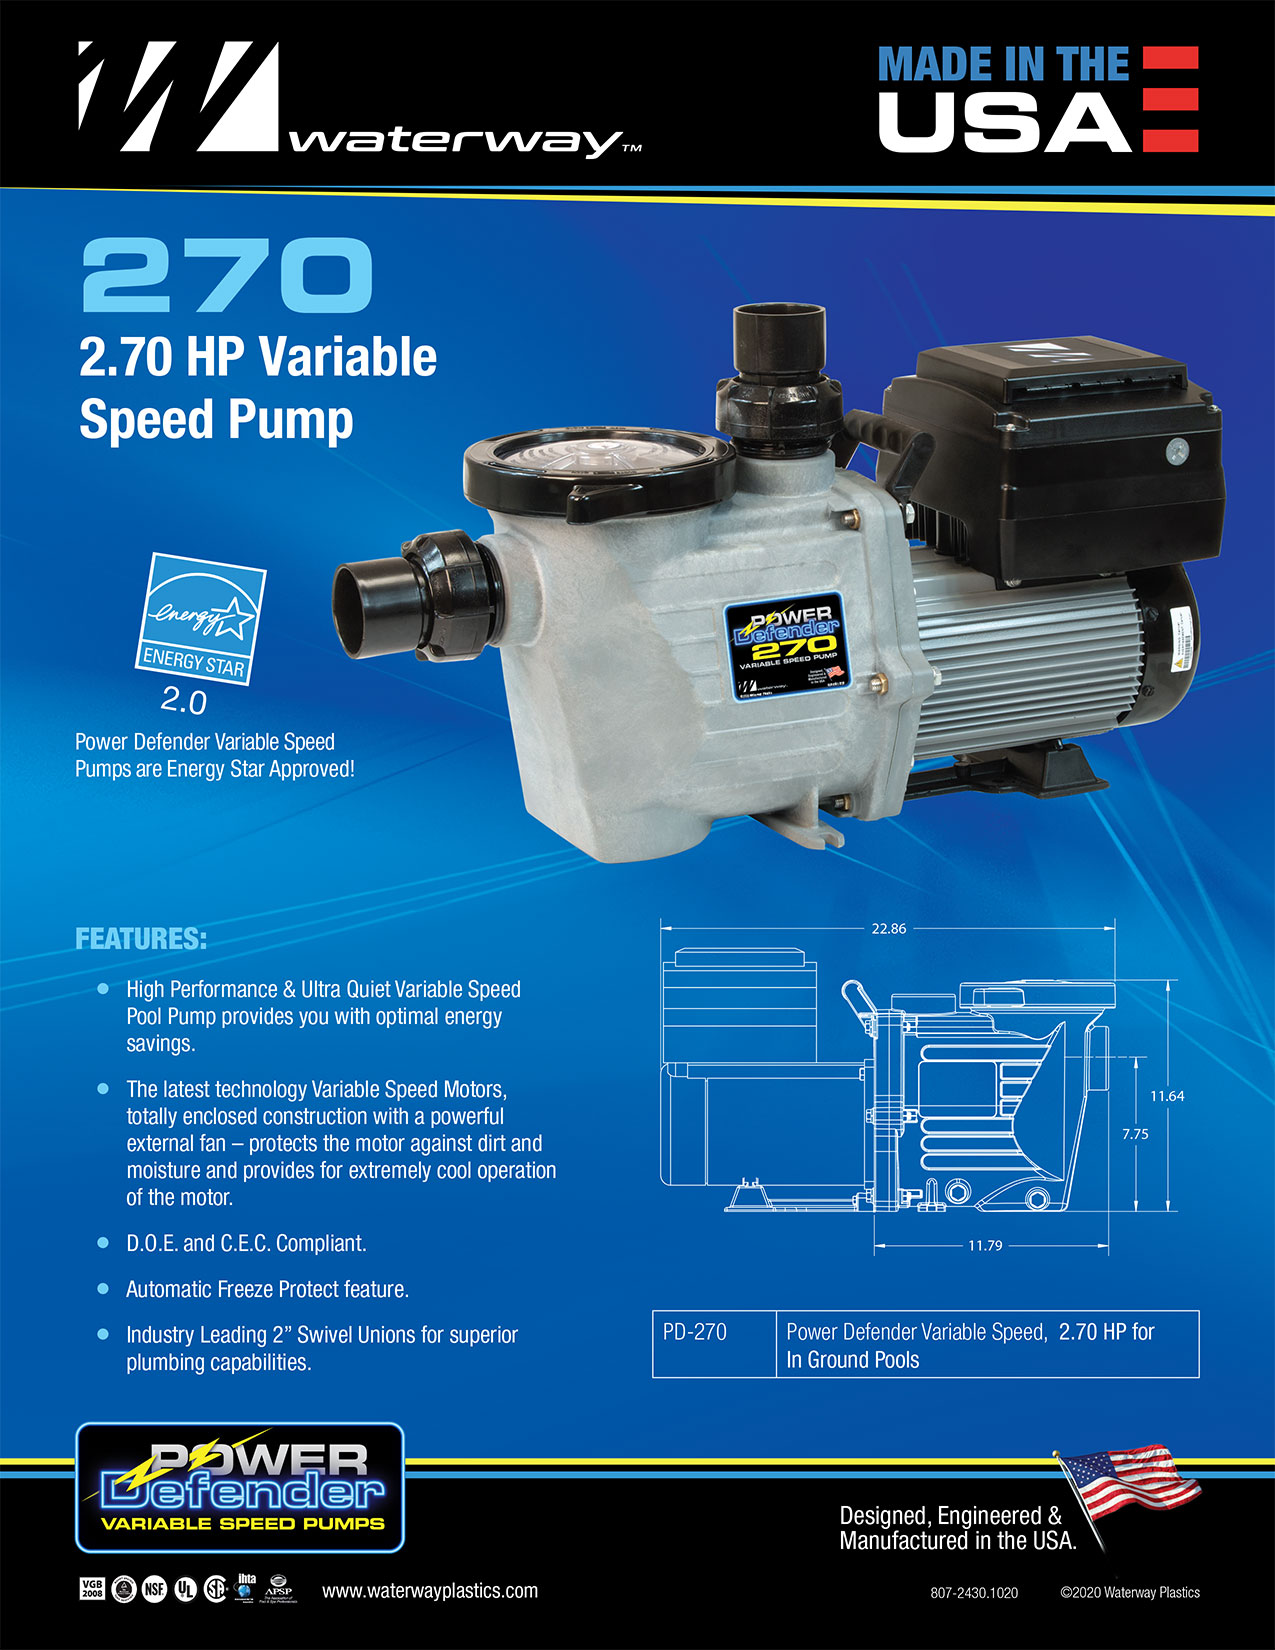 Waterway Power Defender 2.7HP 220V VSP Champion Swimming Pool and Spa Variable Speed Pump PD-270